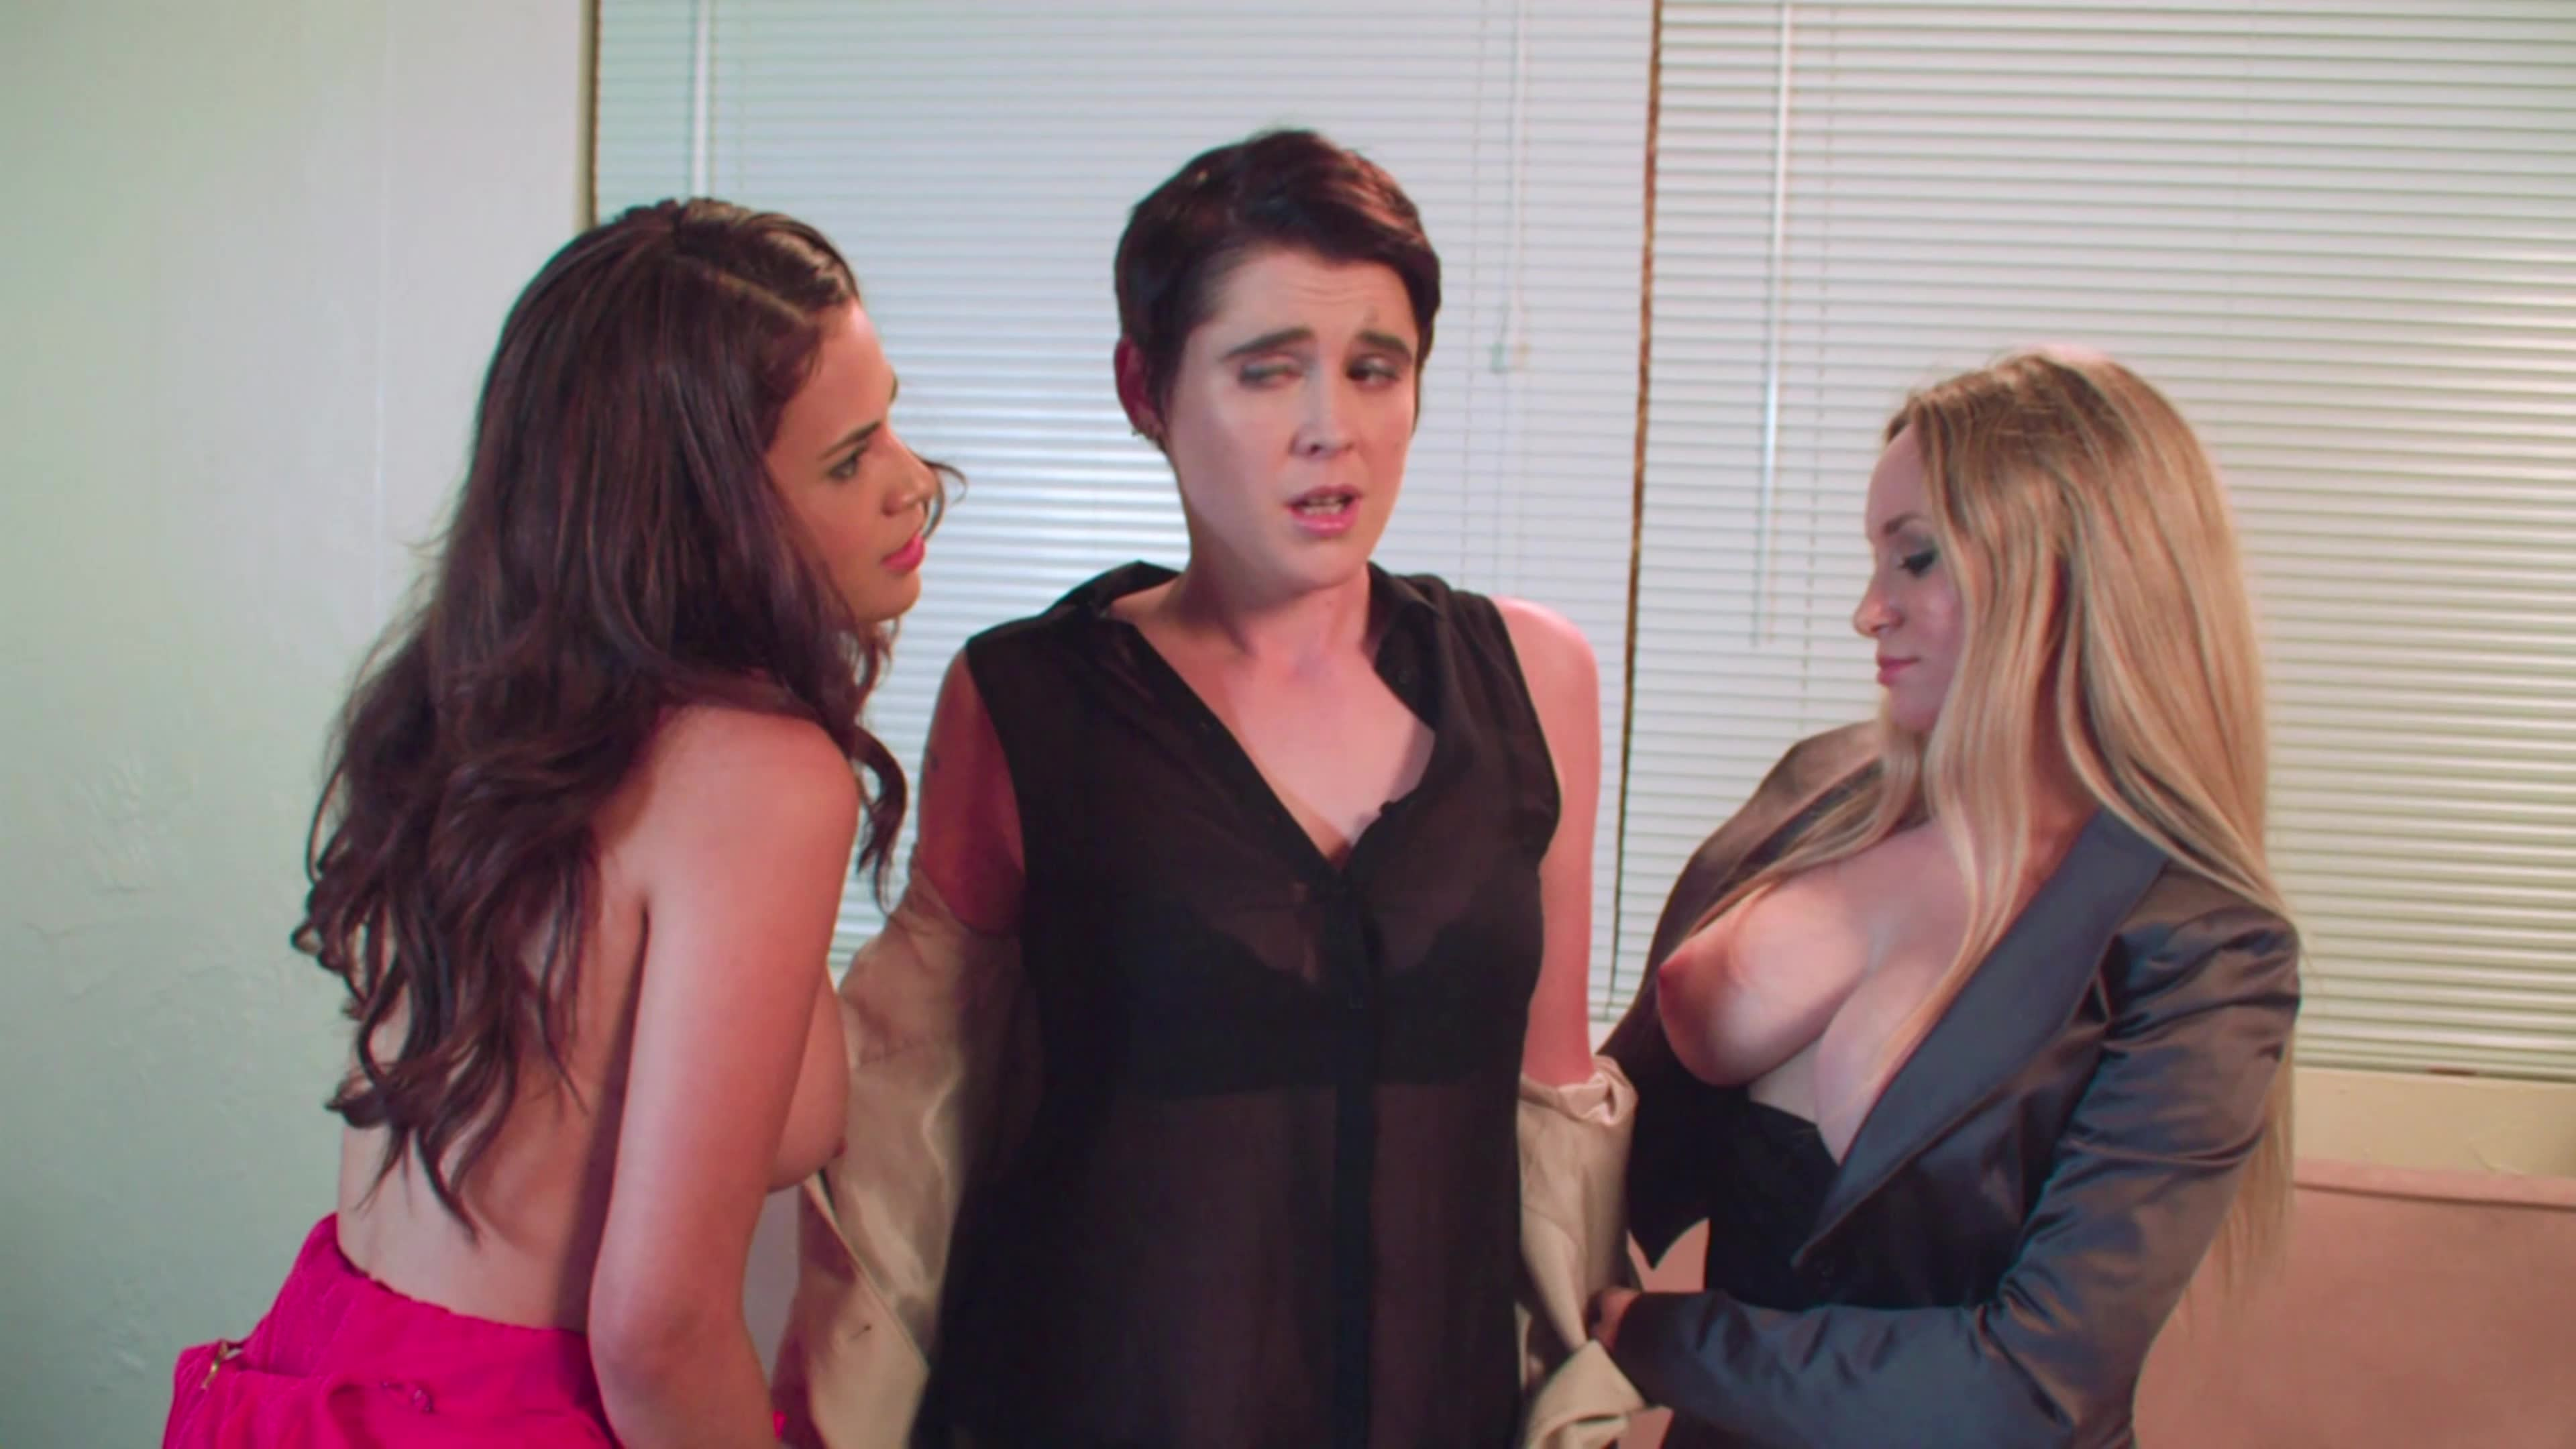 Jamison recommend best of second lesbian porn 30